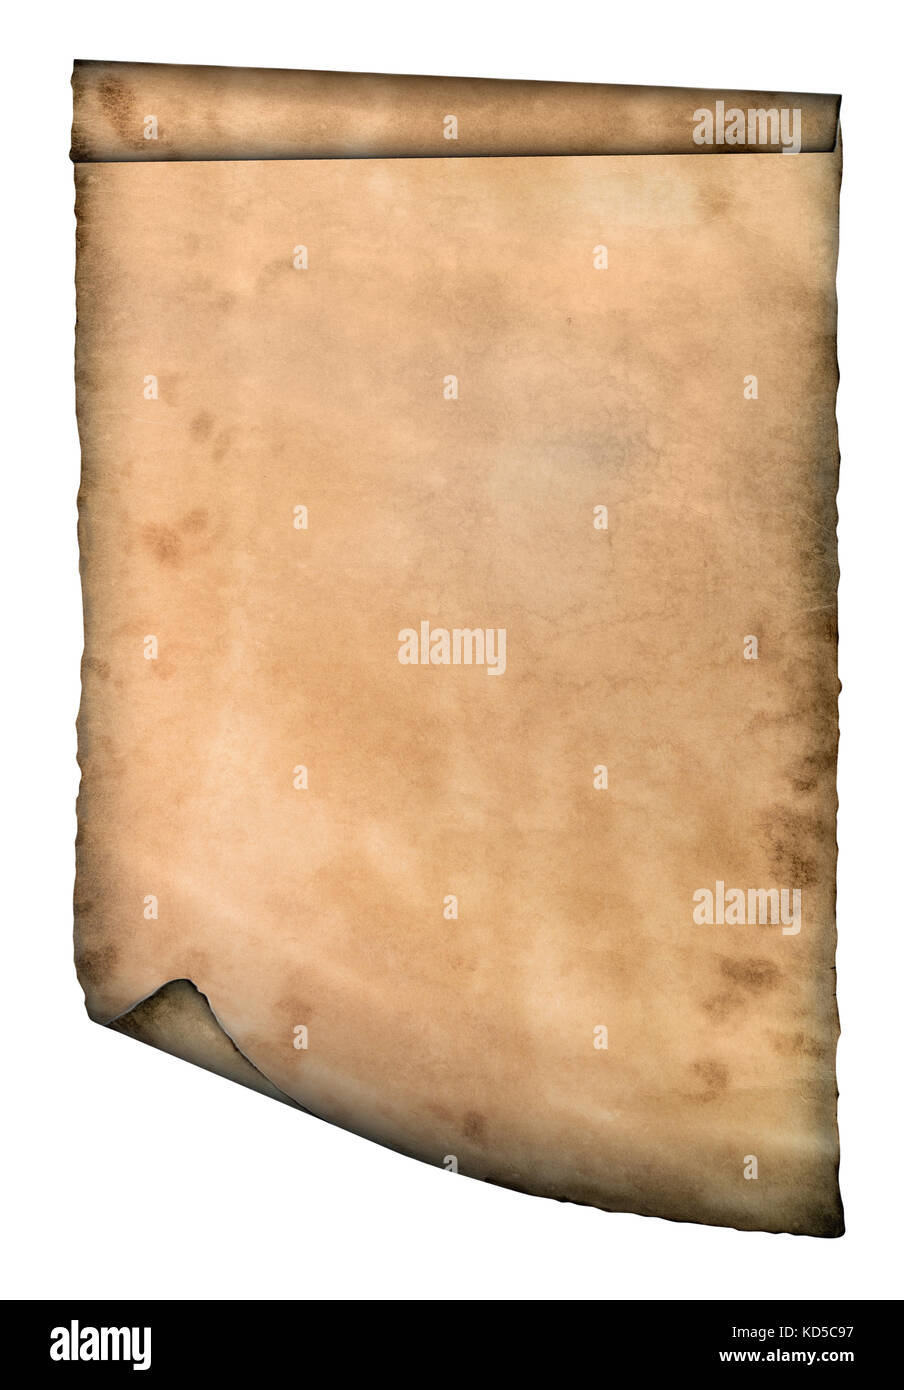 Old page curved paper curves paper parchment background - Stock Image